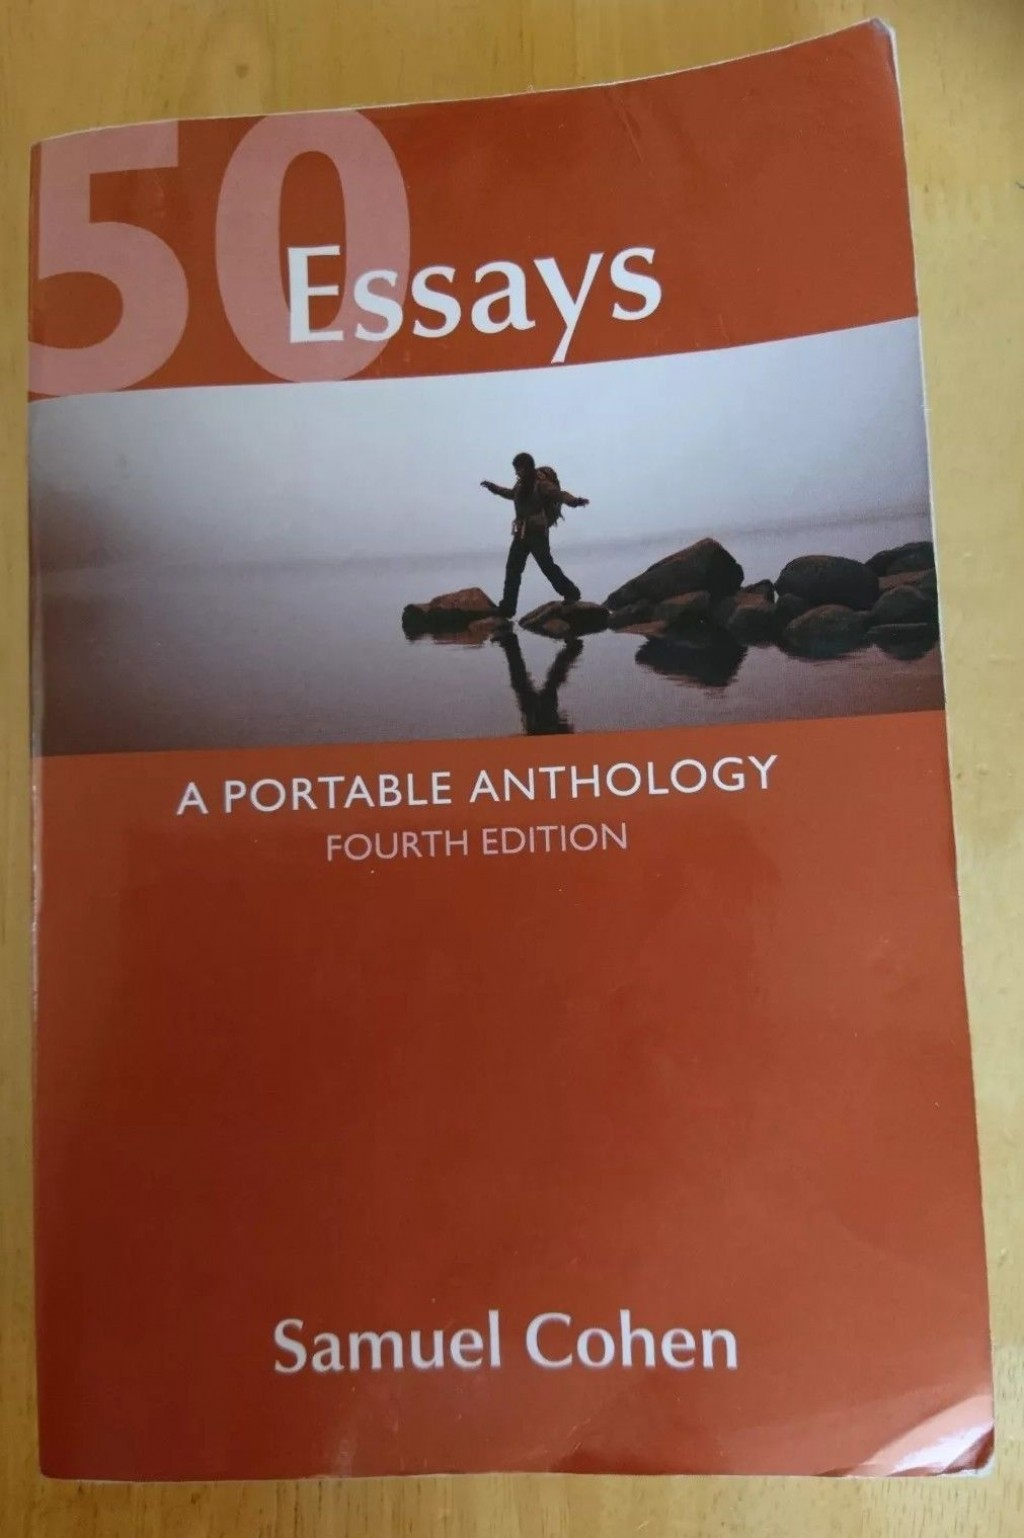 015 Essays Portable Anthology 4th Edition Essay Example S Rare 50 A Answers Online Citation Large